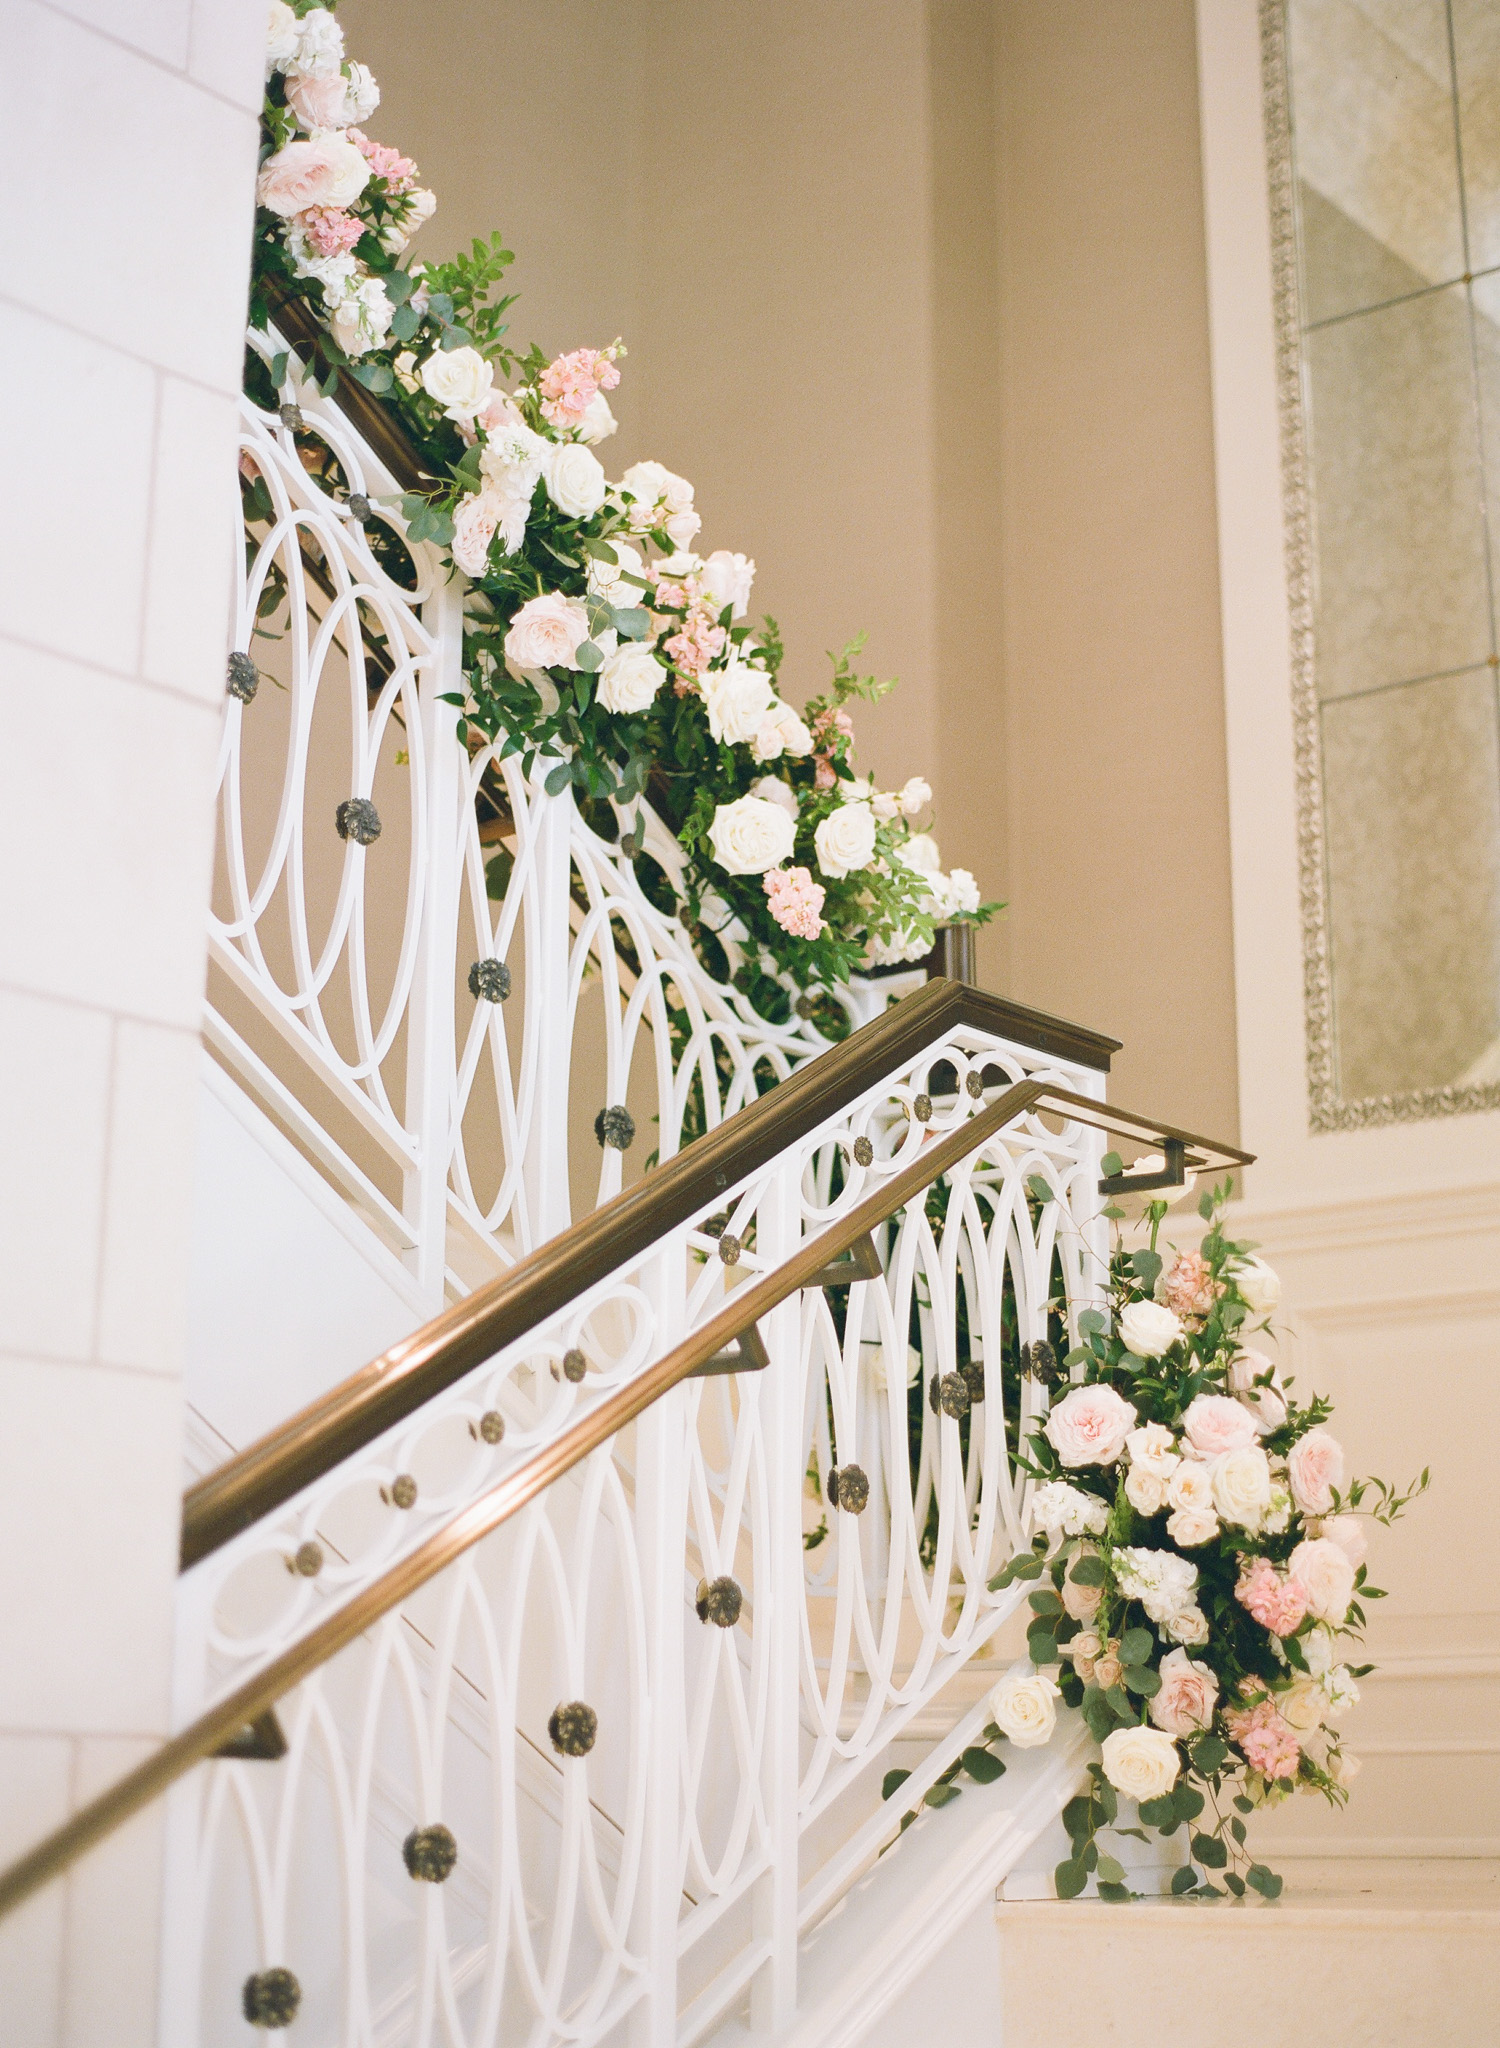 Charleston-Wedding-Hotel-Bennett-95.jpg